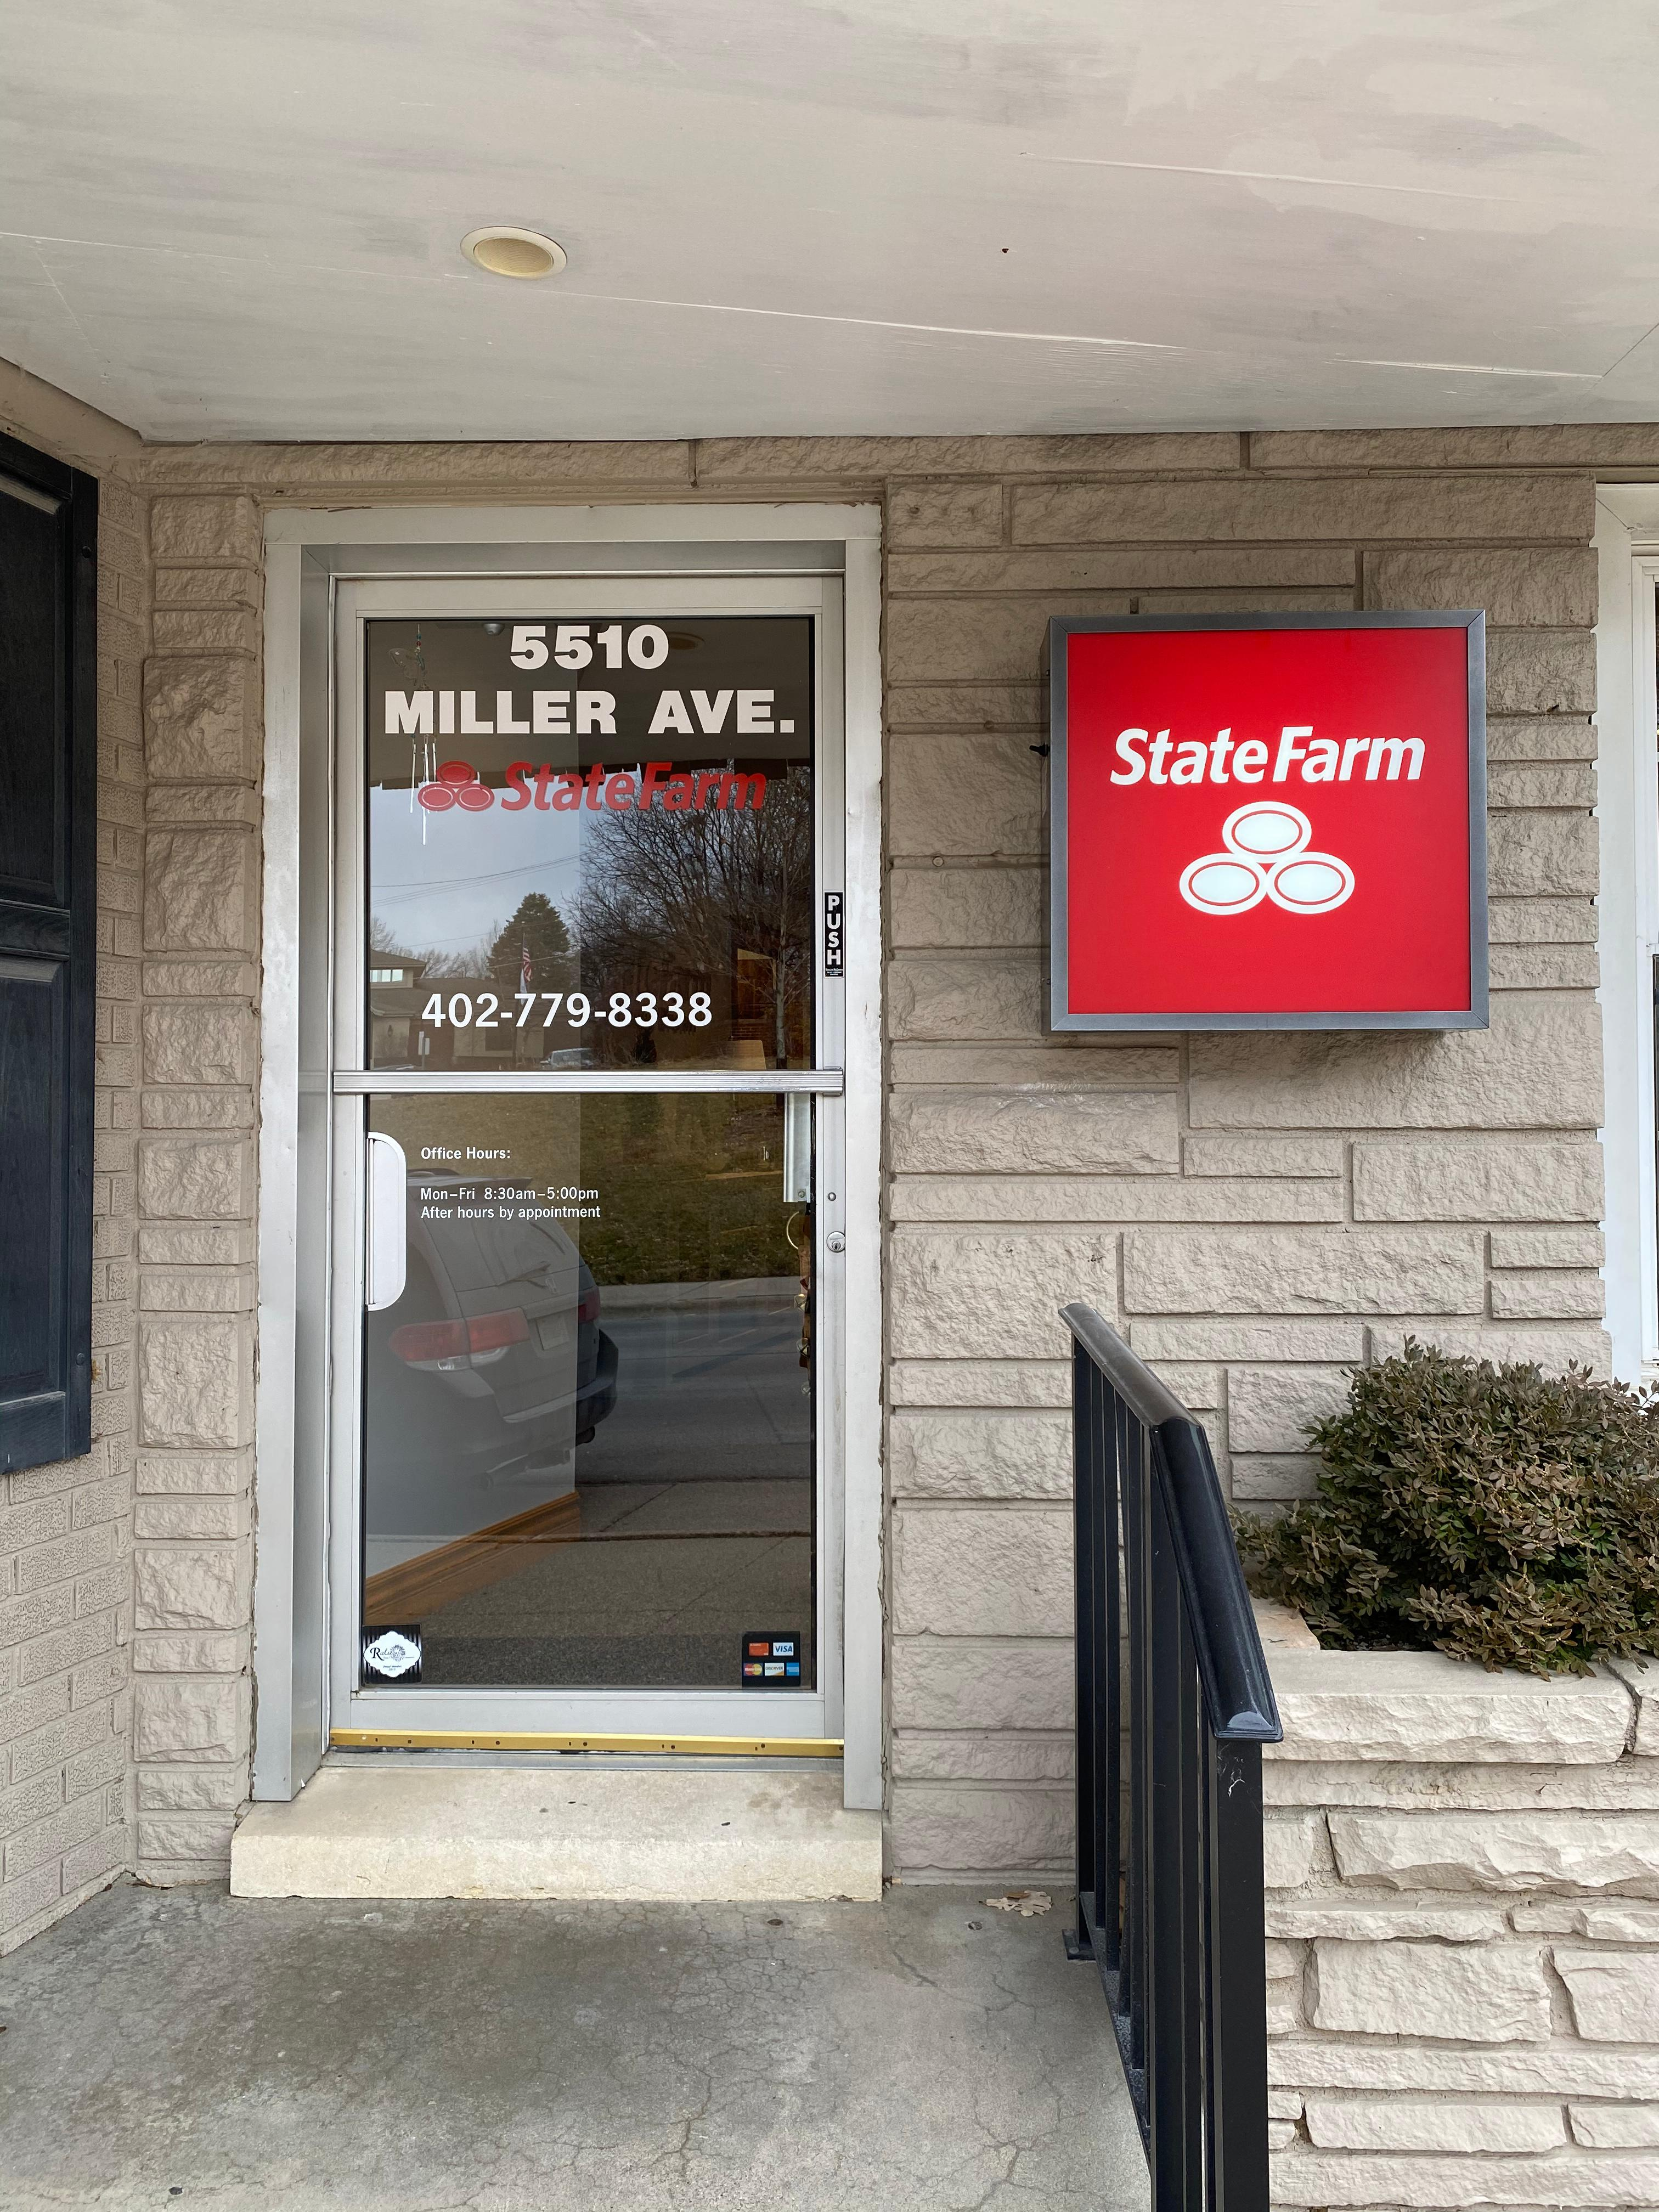 Our Agency Lacey Brown - State Farm Insurance Agent Ralston (402)779-8338